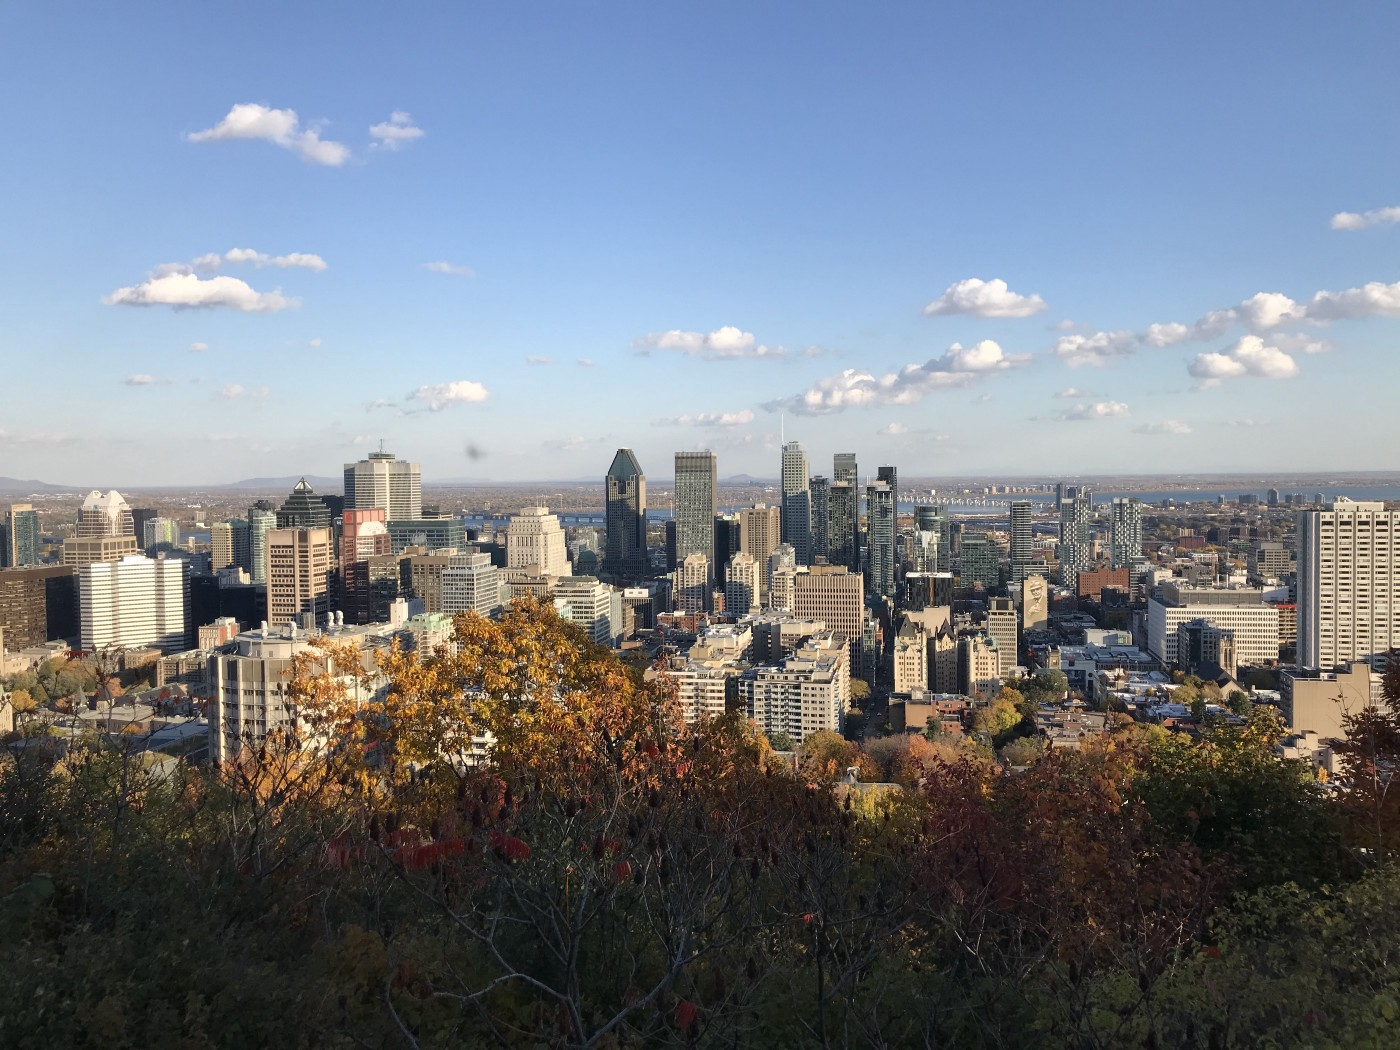 The skyscrapers of Montreal as seen from Mount Royal, in the fall, under a blue sky with a few white clouds.